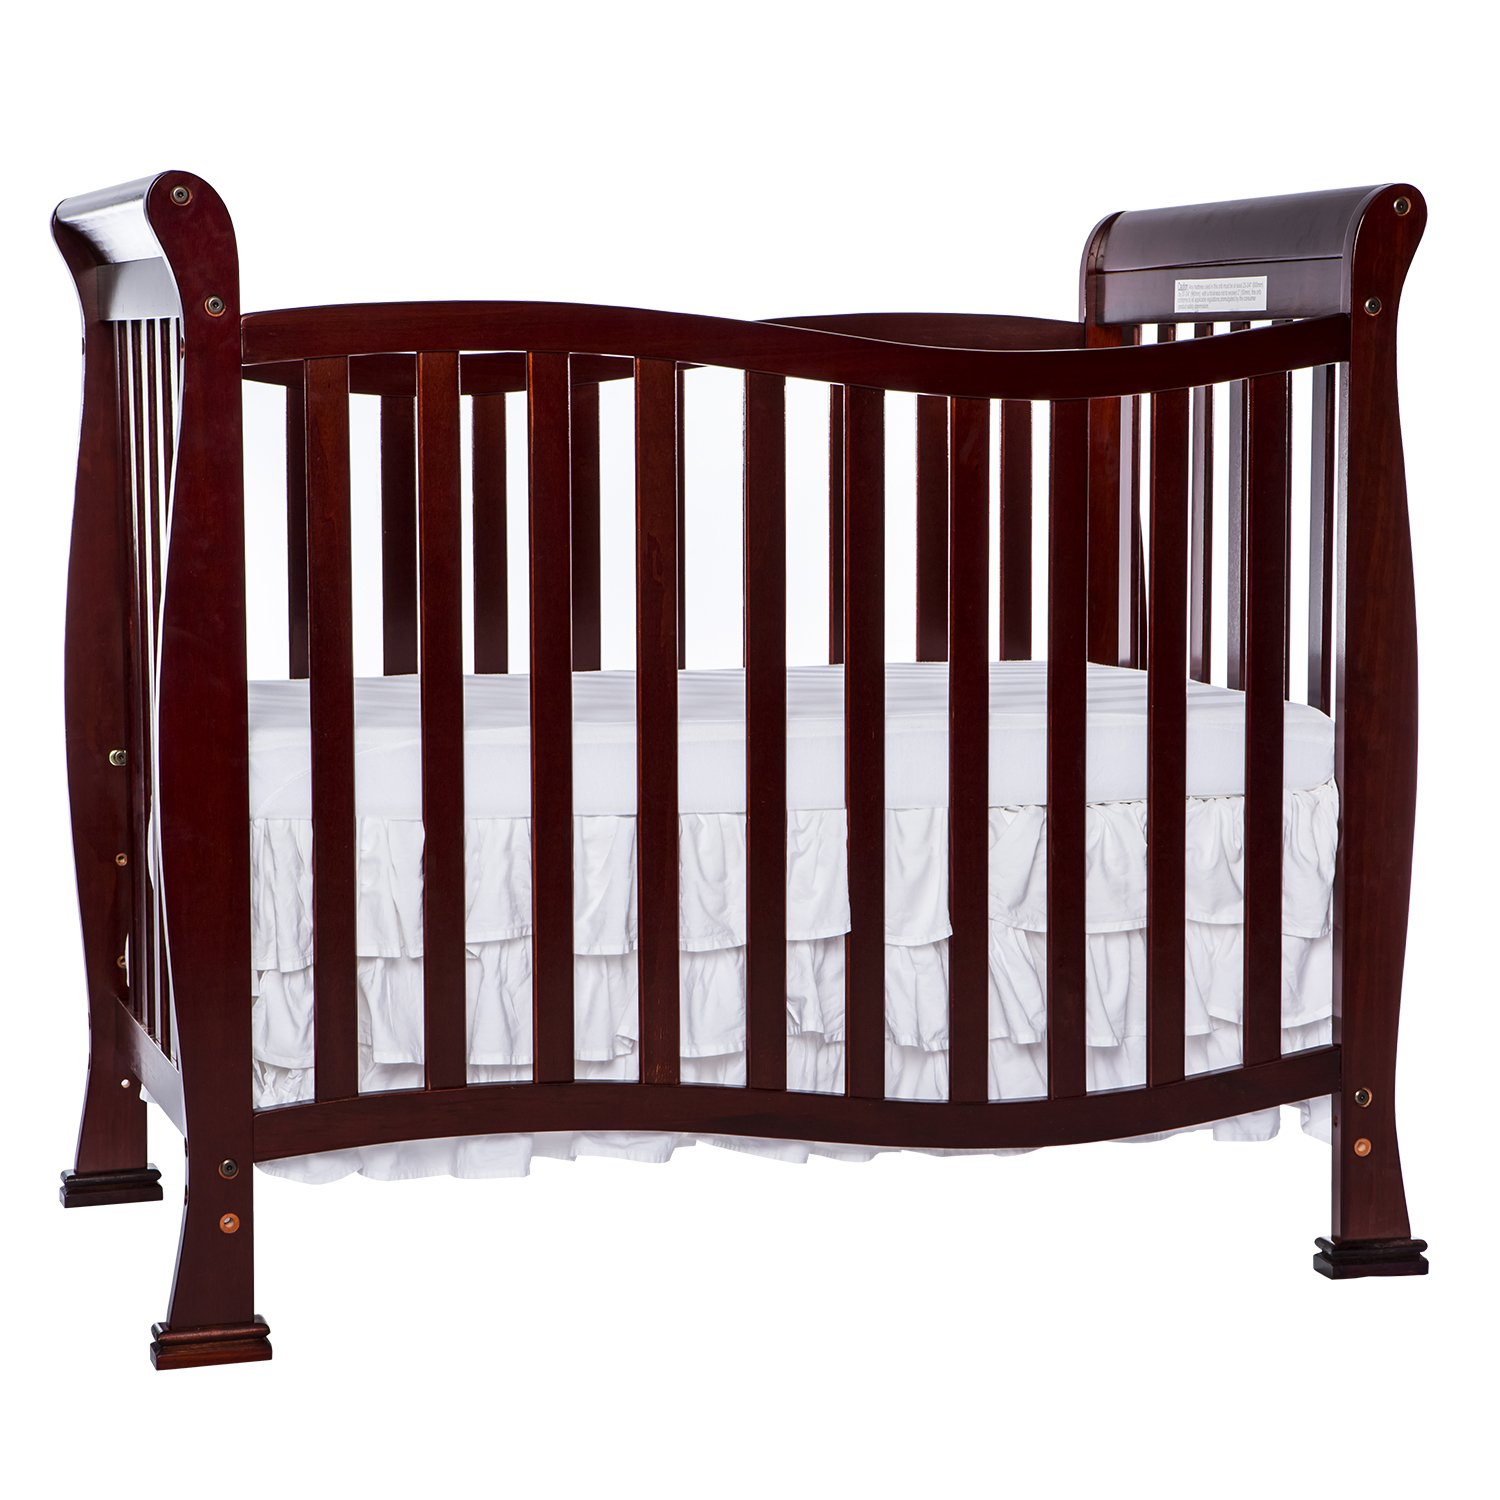 Dream On Me Violet 4 in 1 Convertible Mini Crib, Espresso Dream On Me (DREKK) 631-E